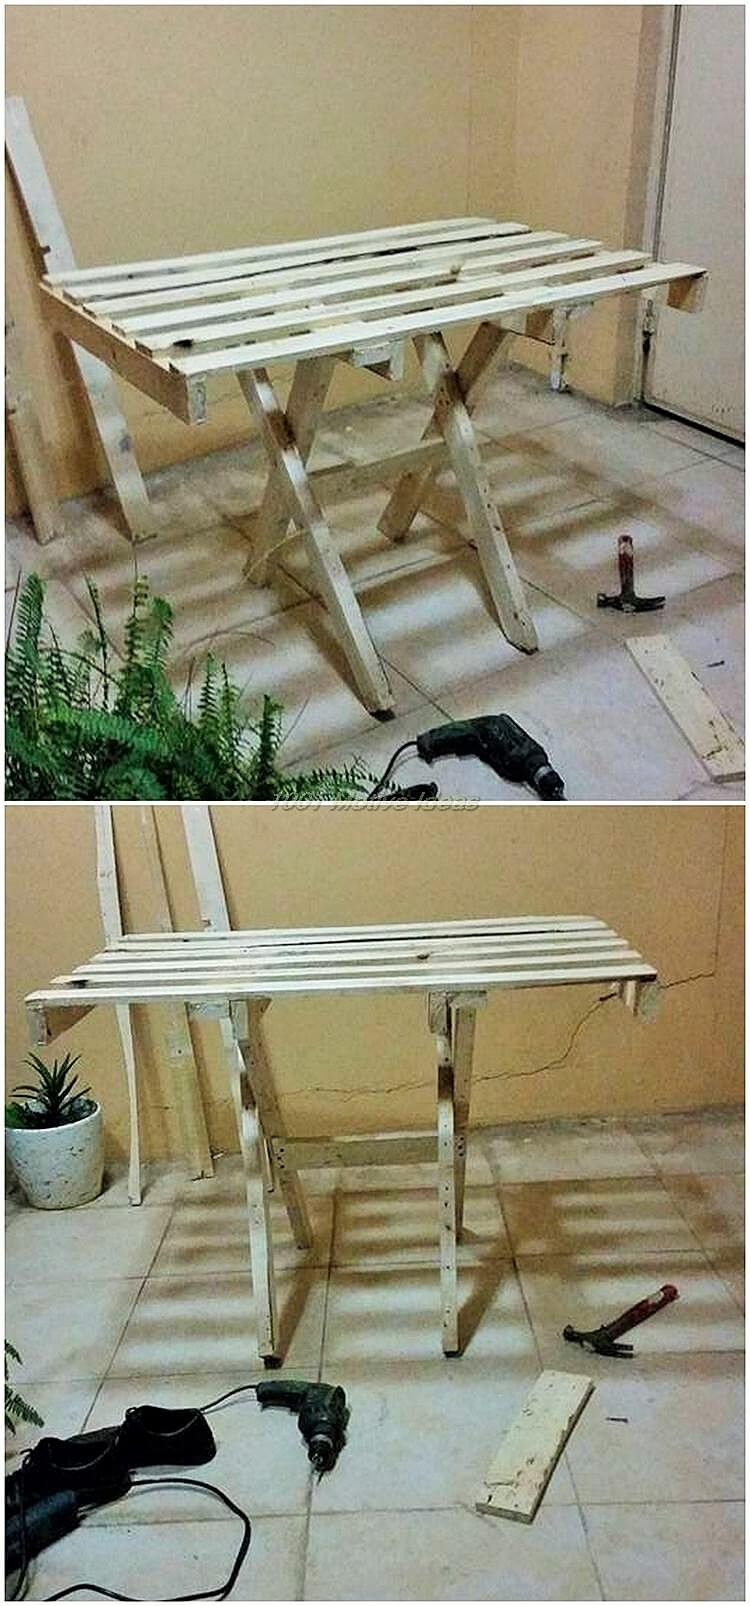 wooden-Pallet-Banch-furniture-Project-Ideas-010